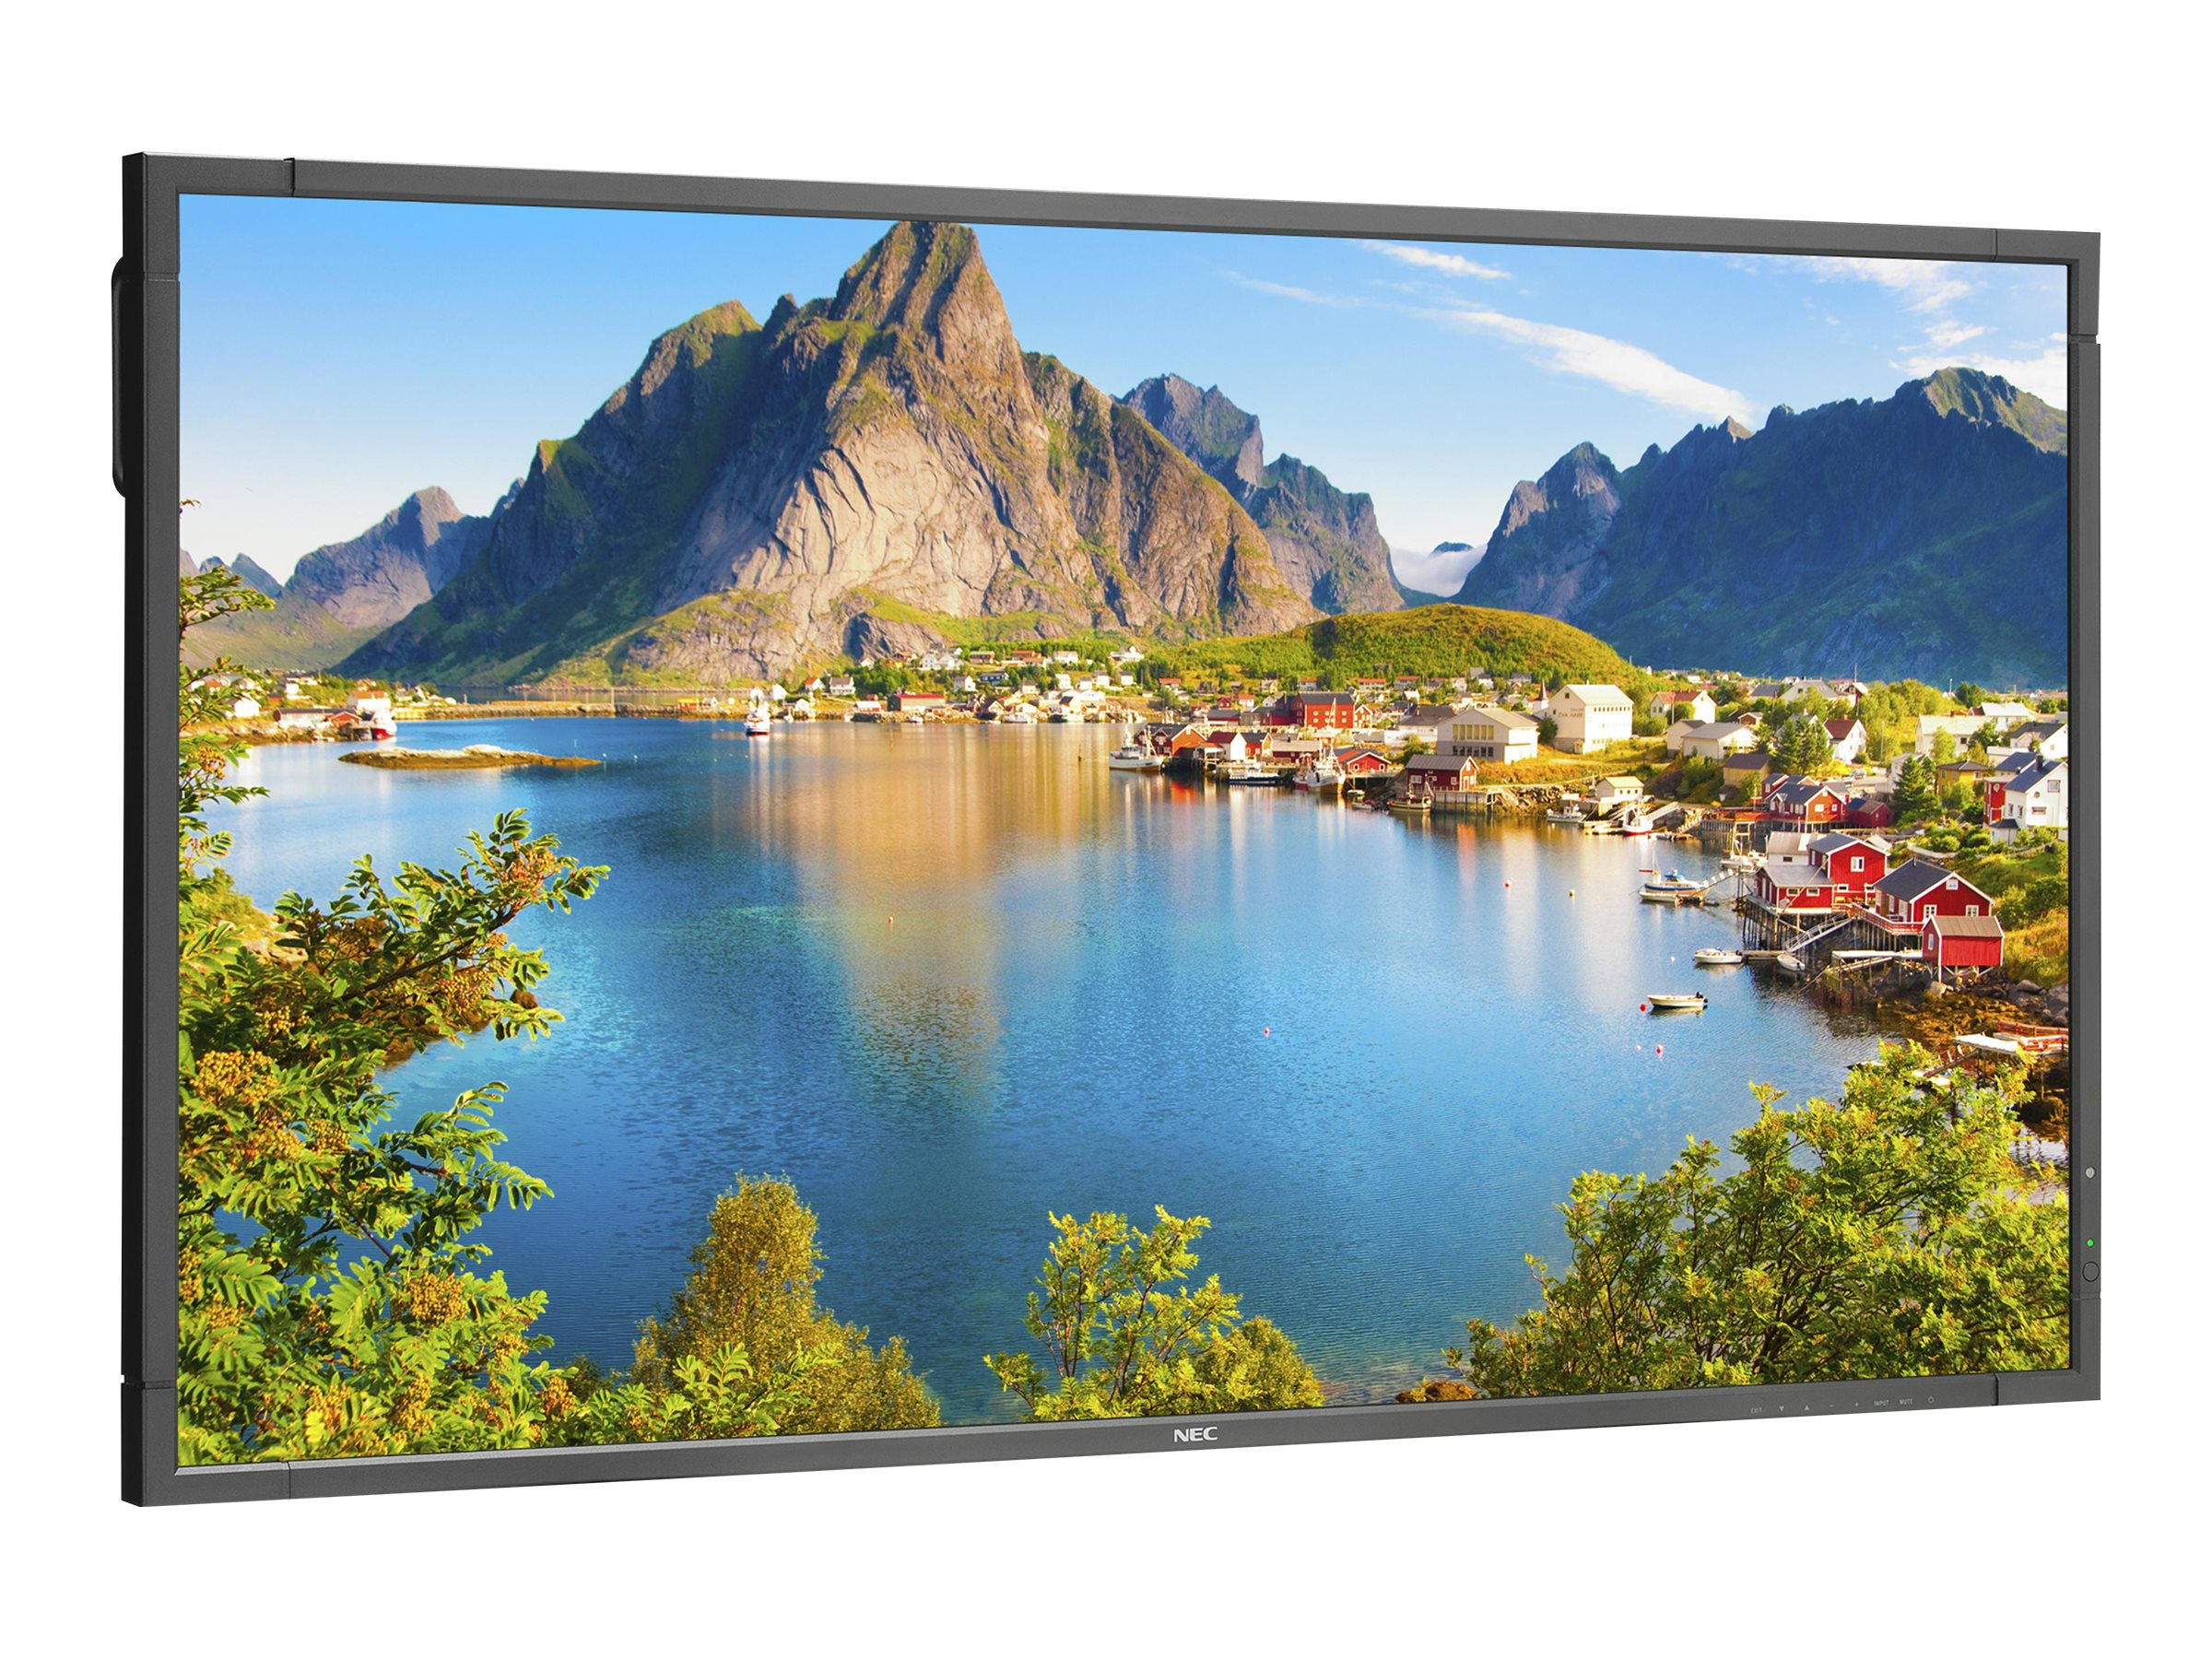 NEC 80 E805 Full HD LED-LCD Commercial Display with Integrated Tuner, E805-AVT